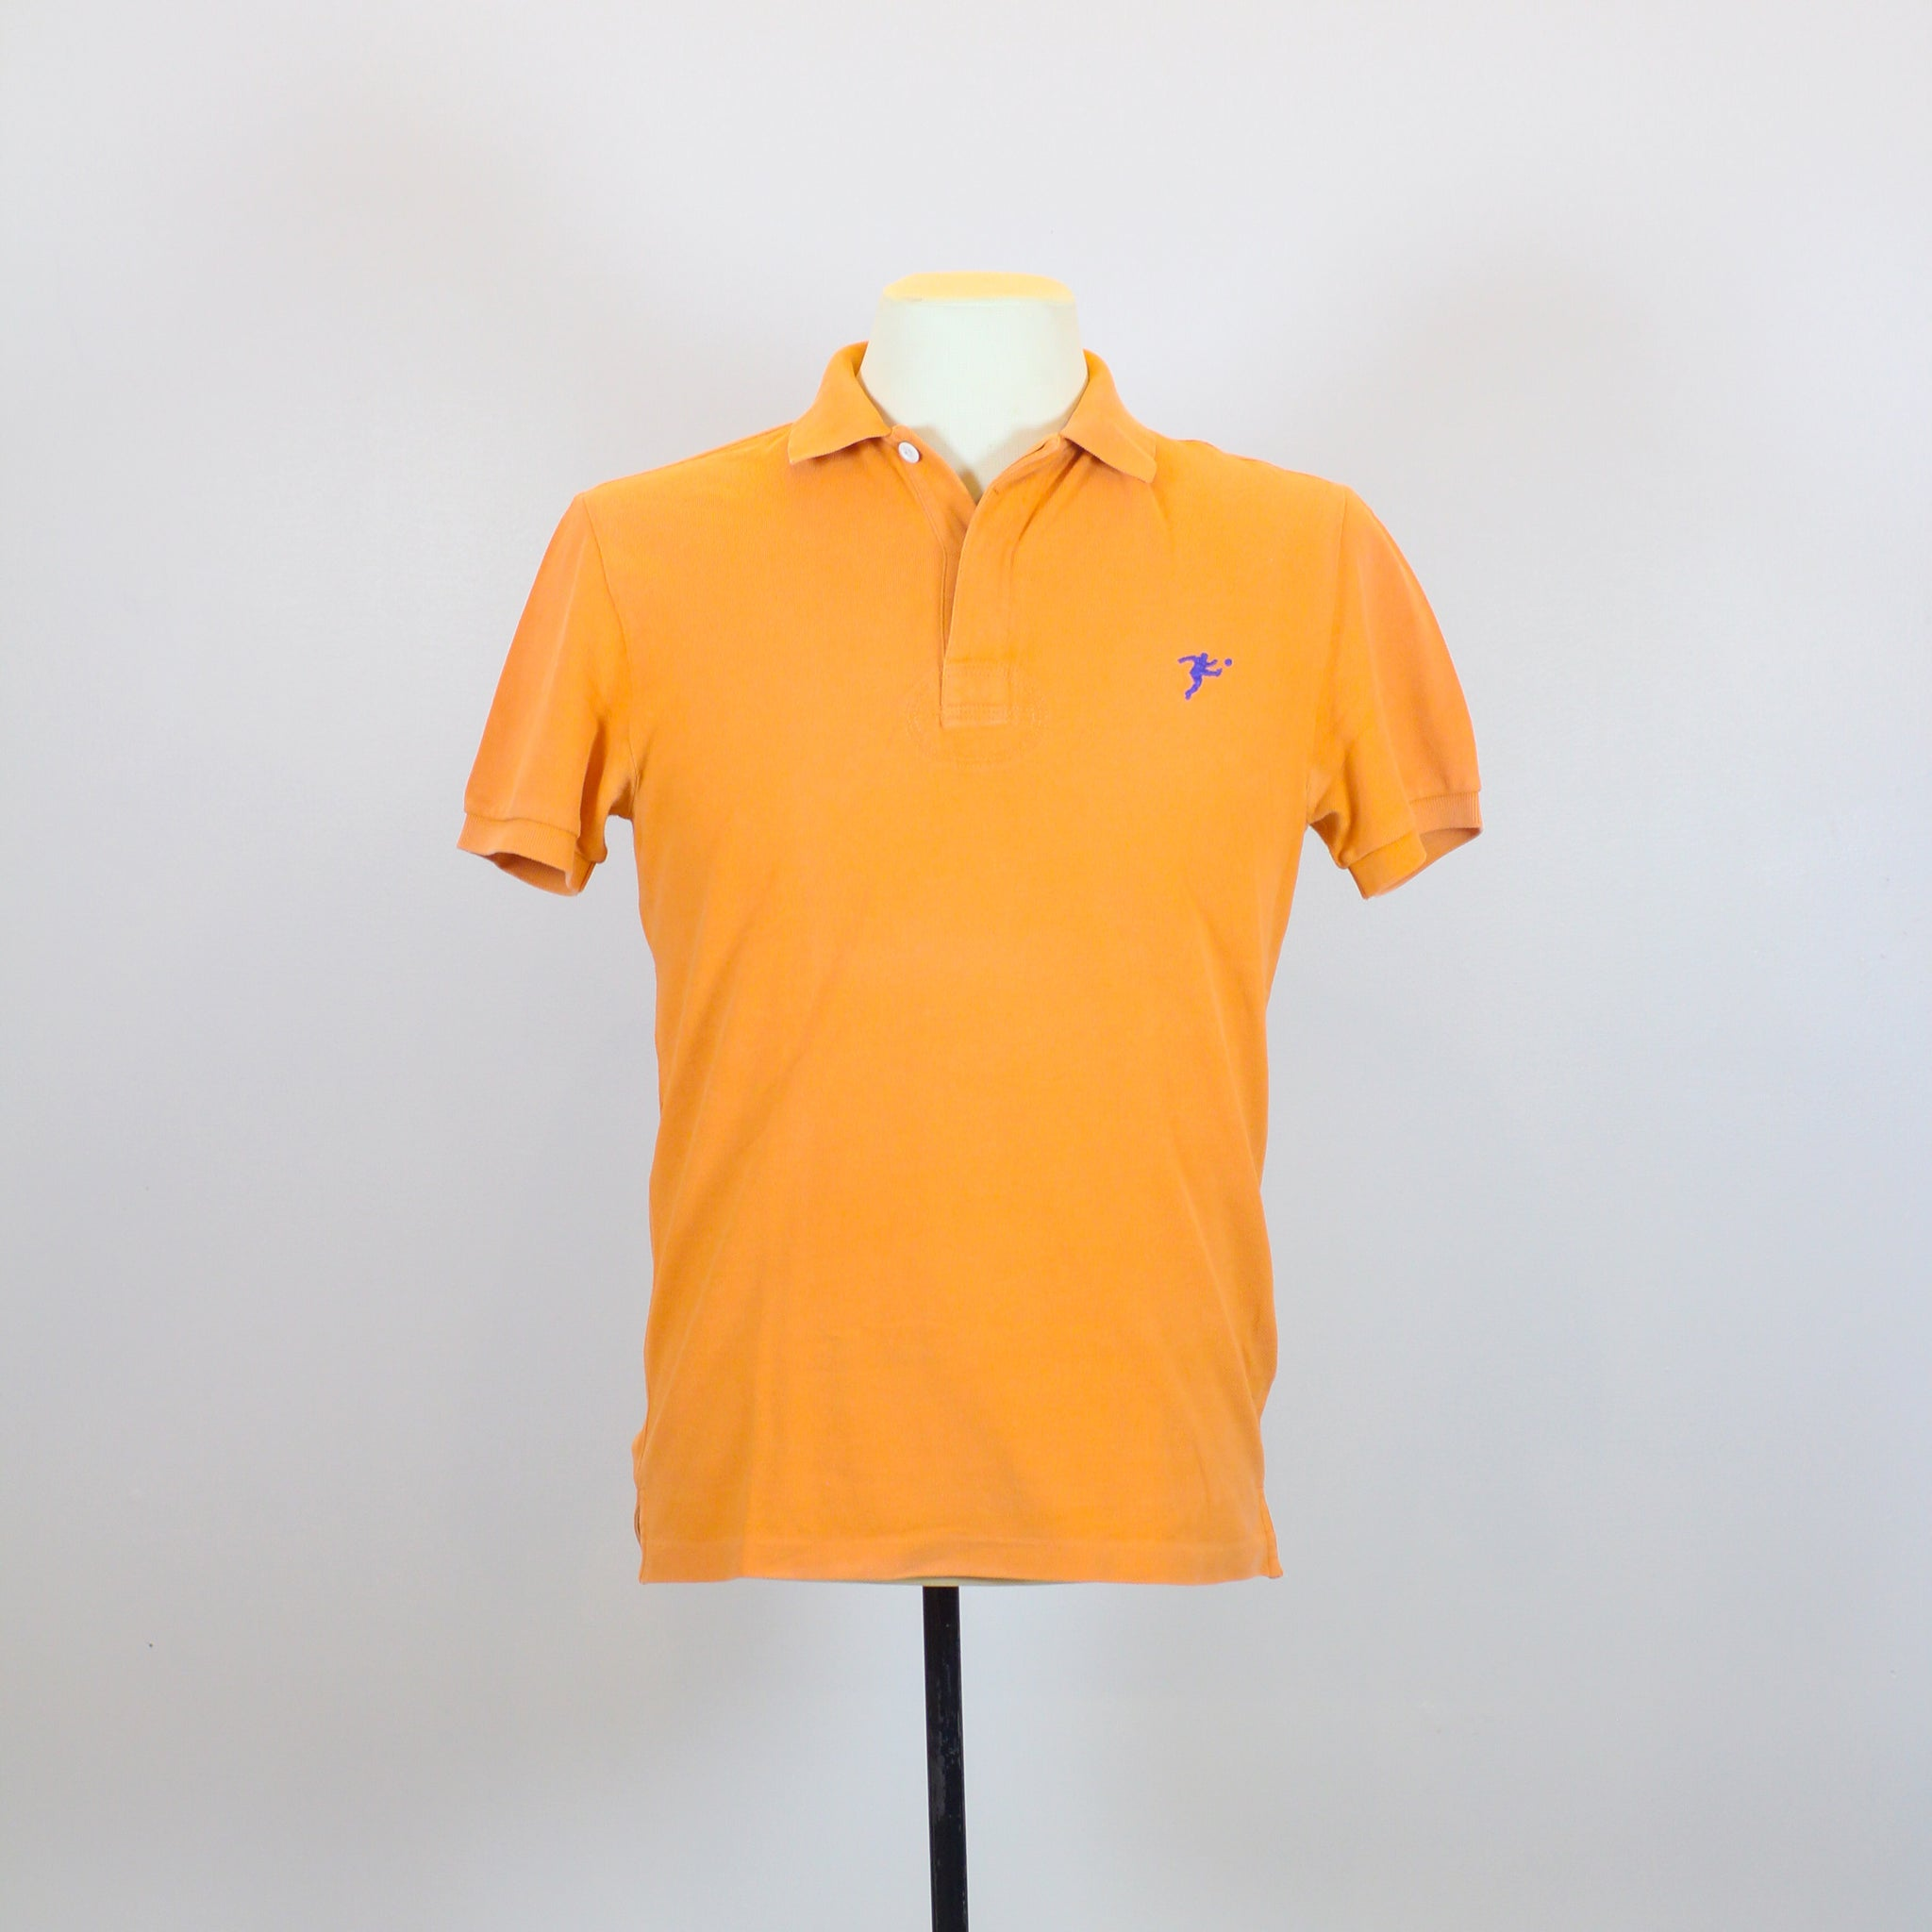 Ralph Lauren Orange Polo Shirt